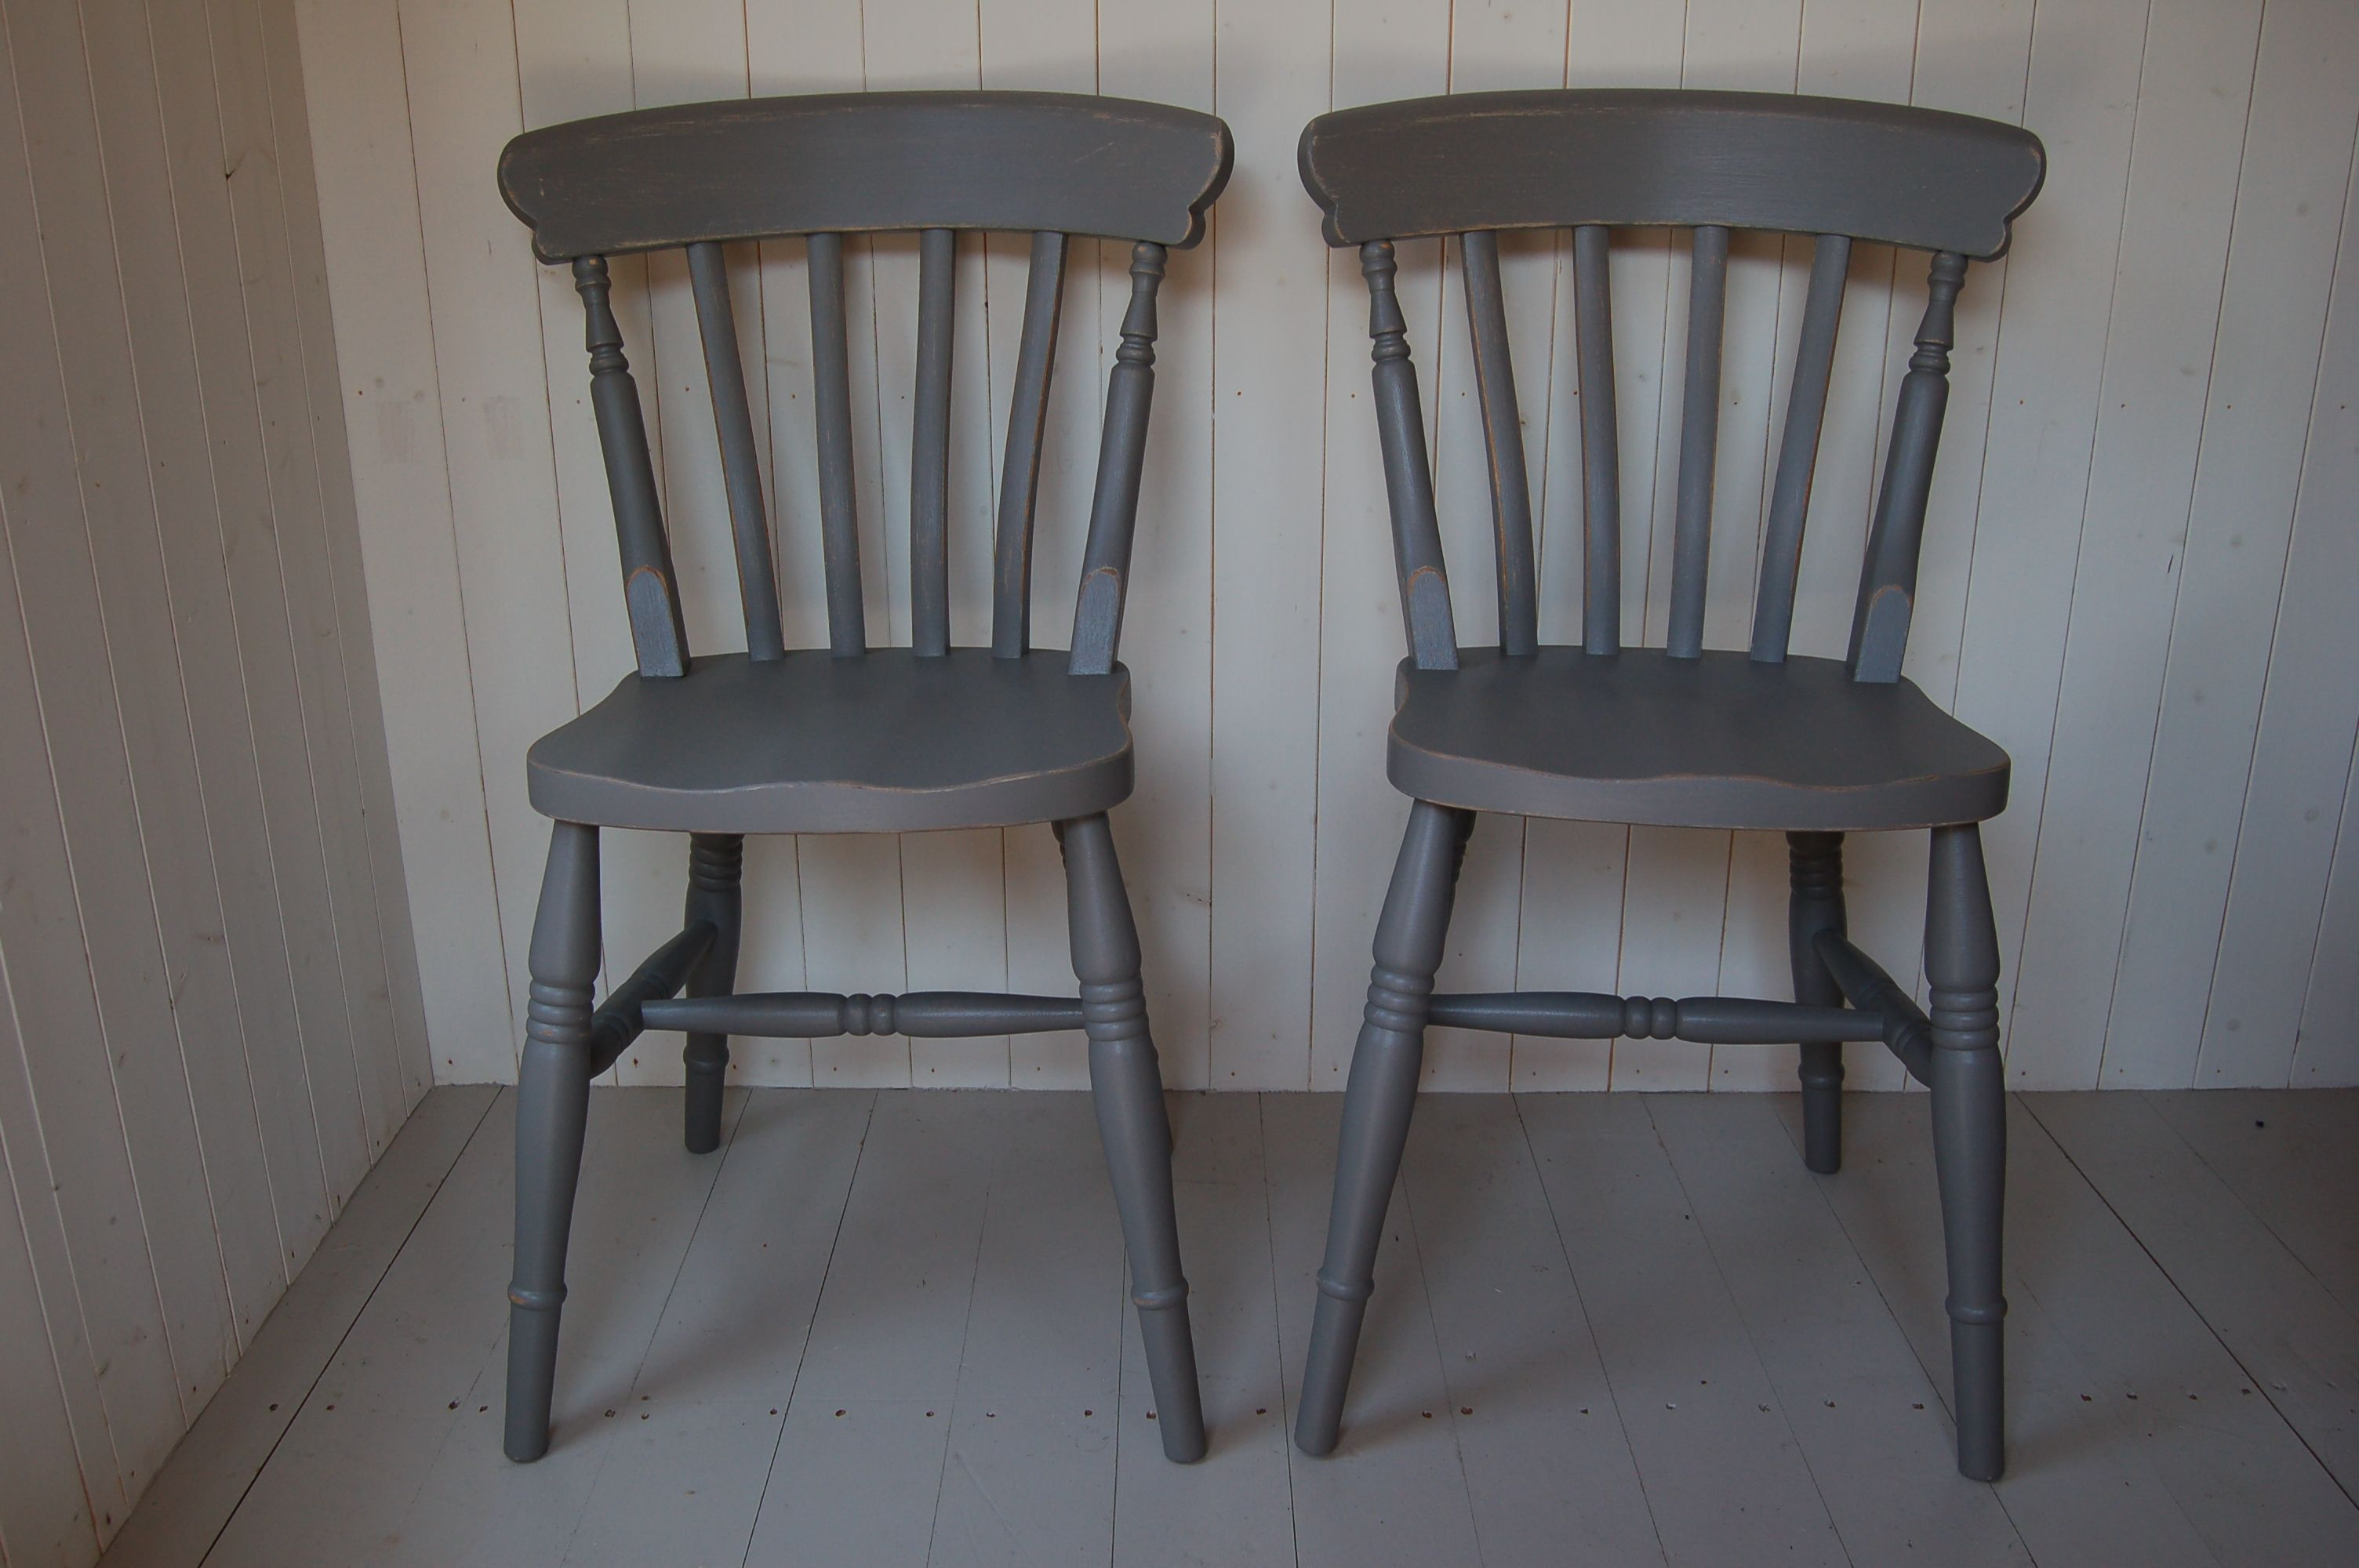 Best Country Cottage Chairs Hand Painted And Distressed In F B 640 x 480